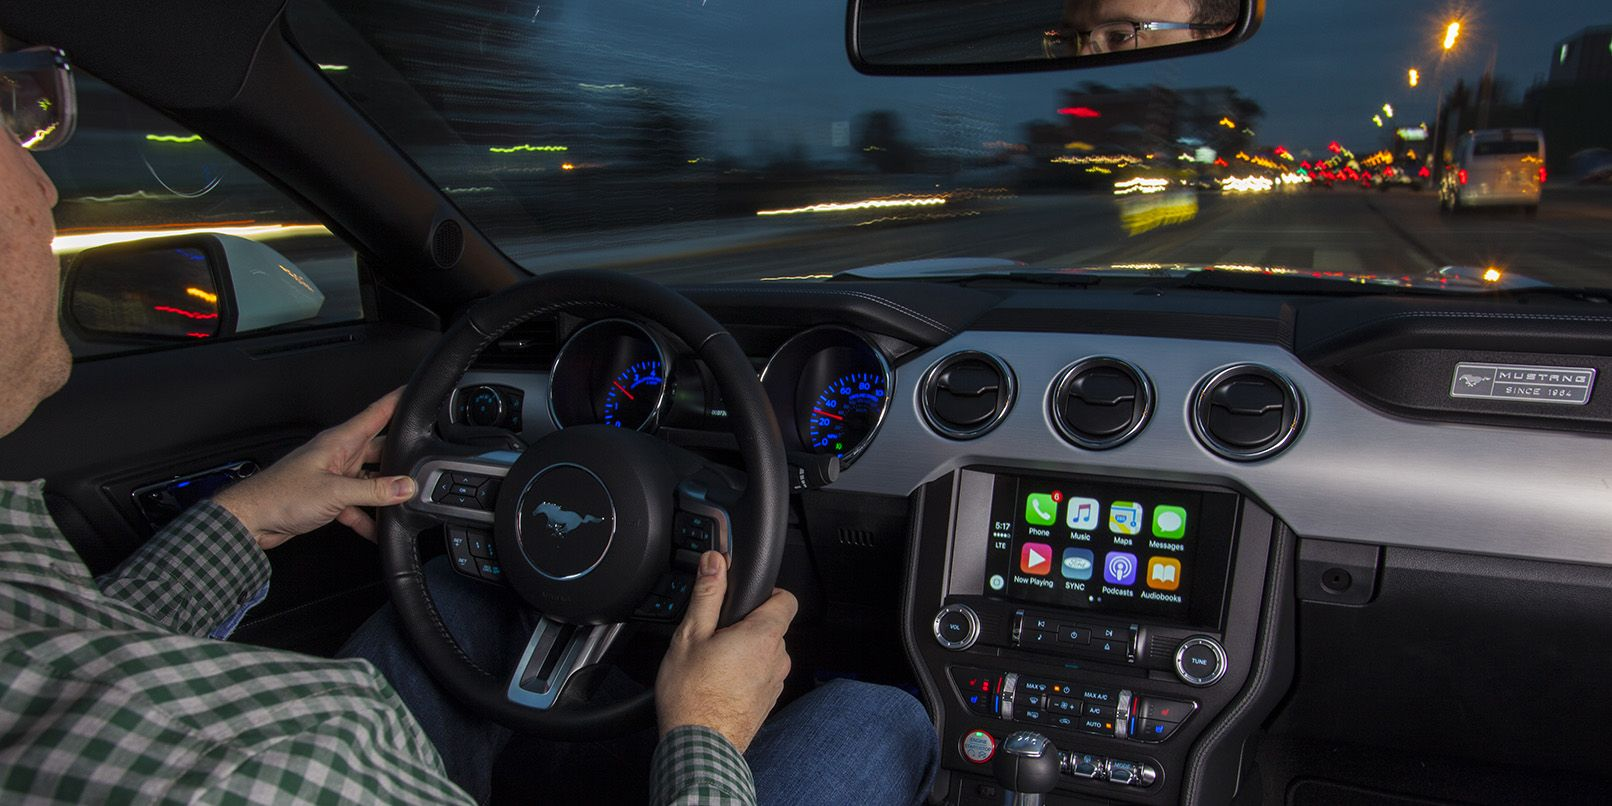 Apple's CarPlay and Android Auto are coming to Ford cars